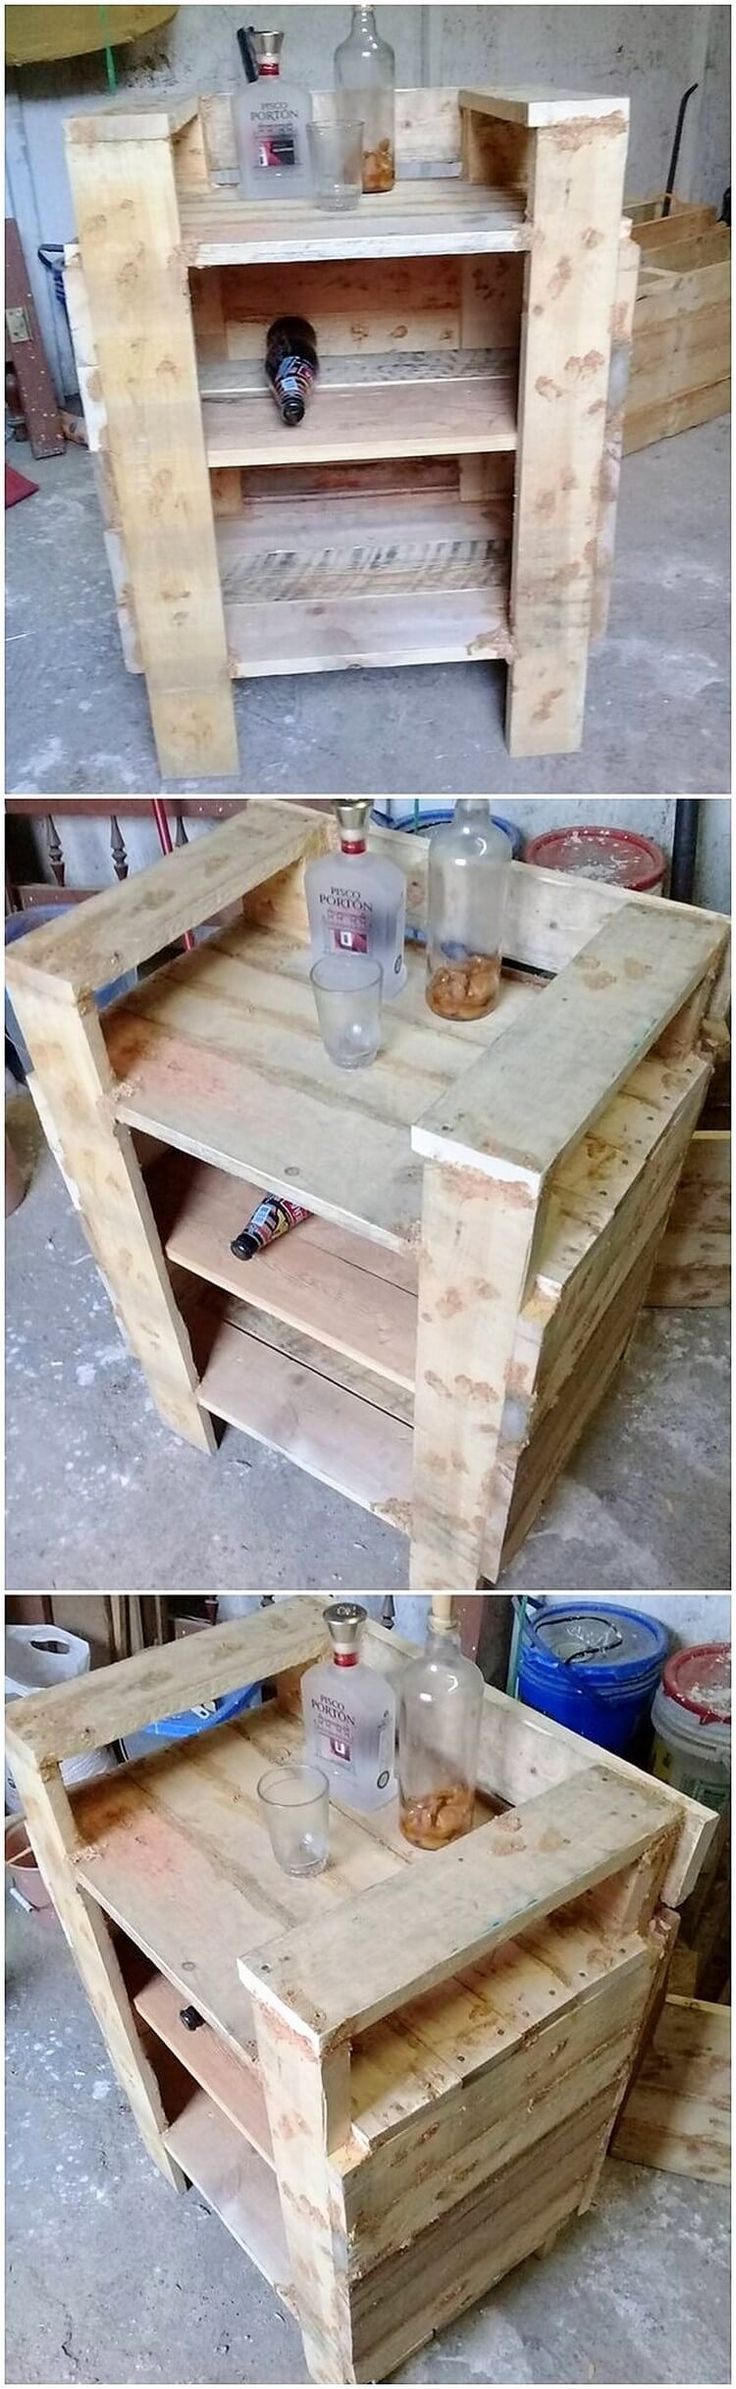 Adding the pallet creative wine rack stand is one of the ideal option which you can undergo by using wood pallet material. It is basically style up in long giant staircase style that is all settled with the blend of the portions of shelves into it. Make your house bar area attractive looking with this creation!